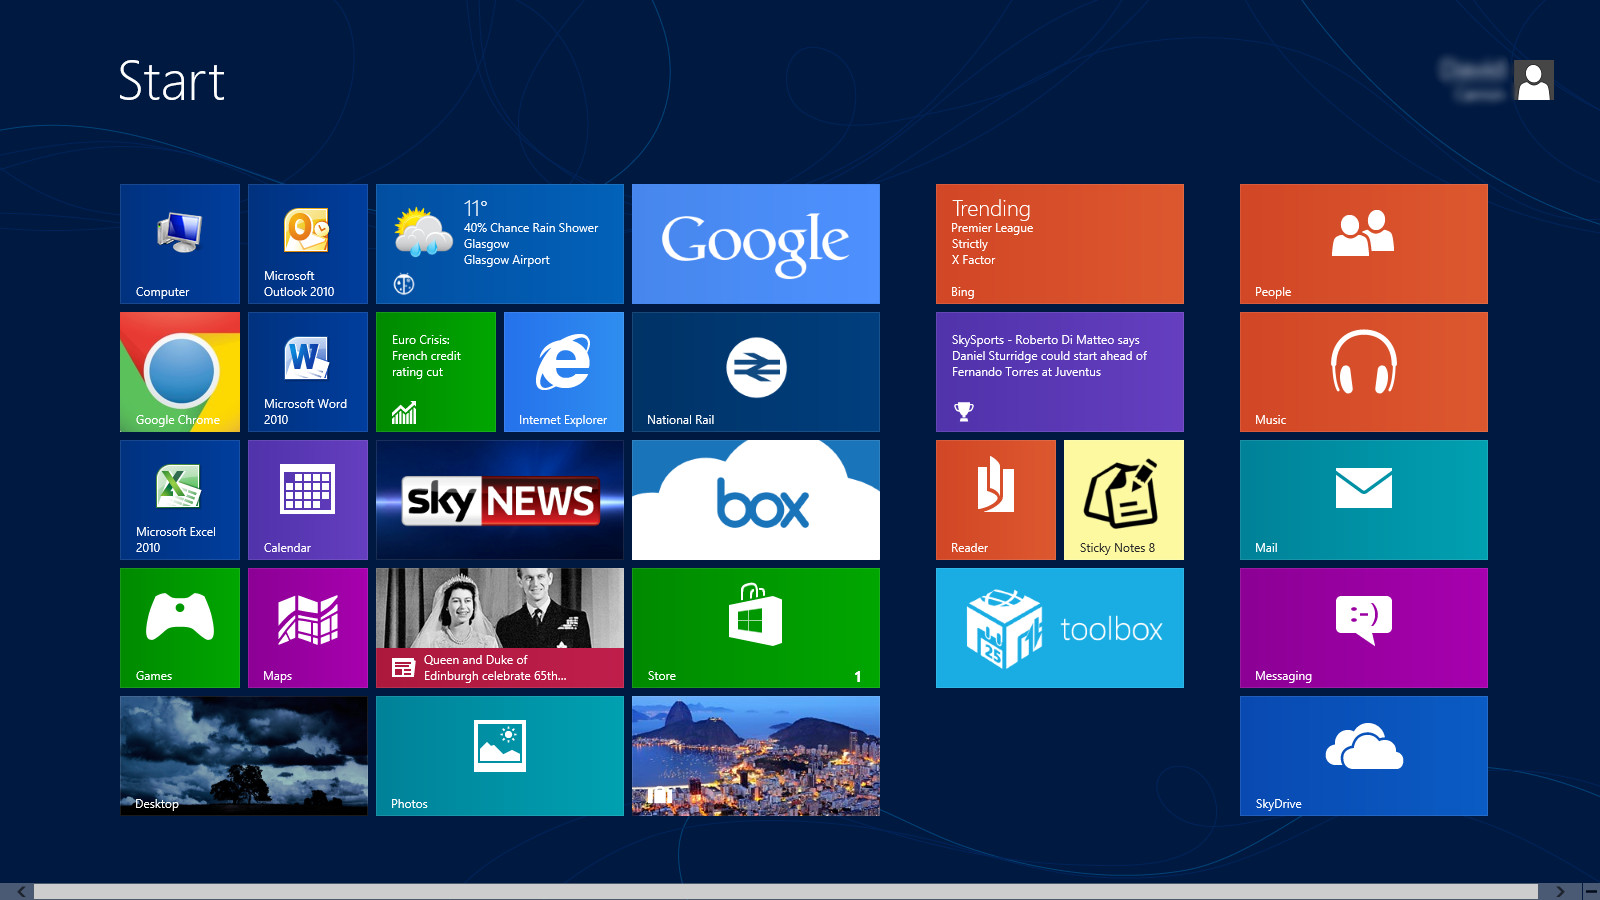 Download Windows Phone Power Tools For Windows 8.1